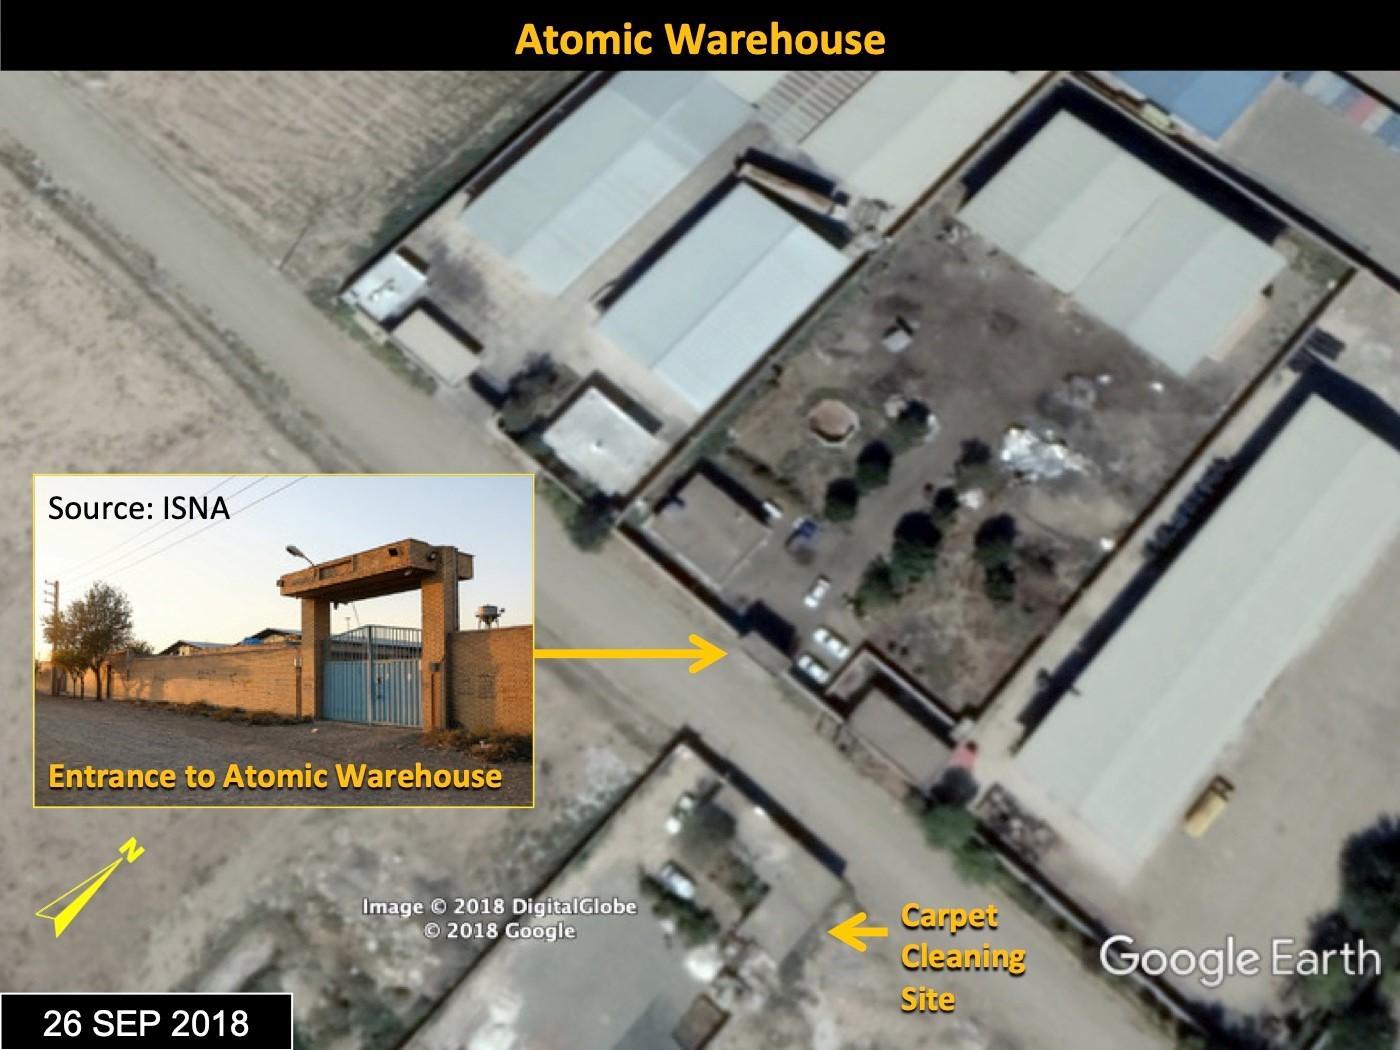 Uranium Atomic Warehouse